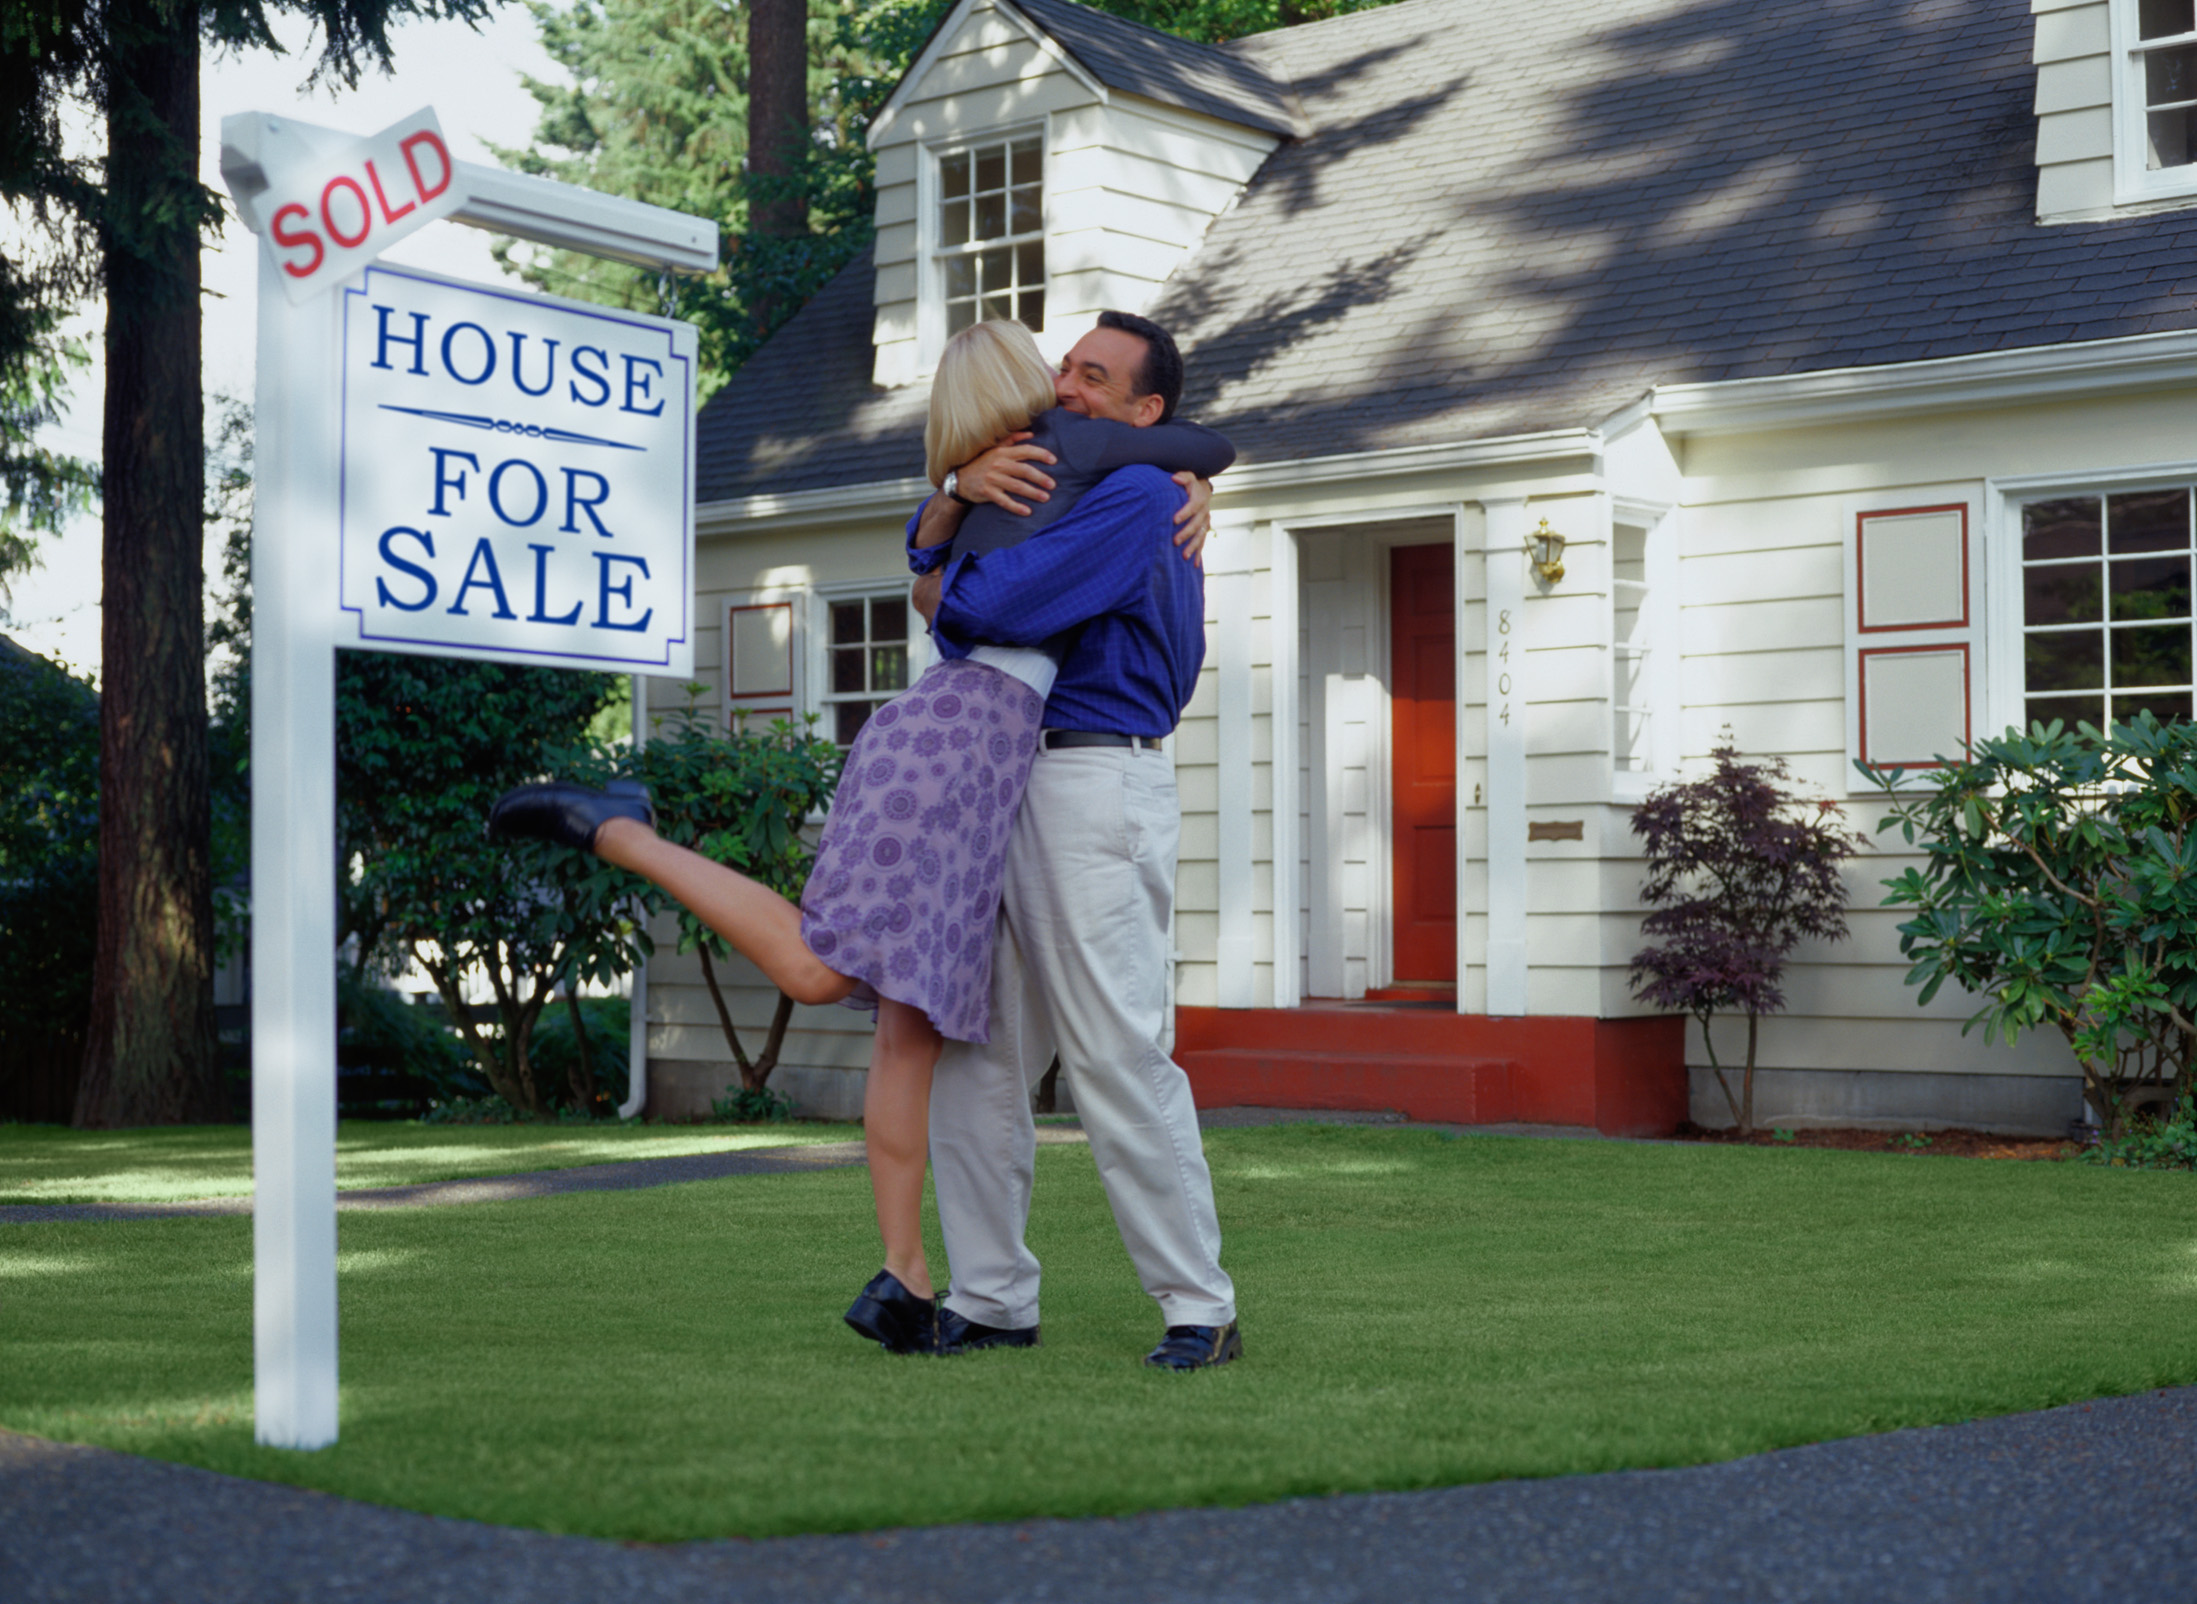 PEOPLE BUYING A HOUSE.jpg